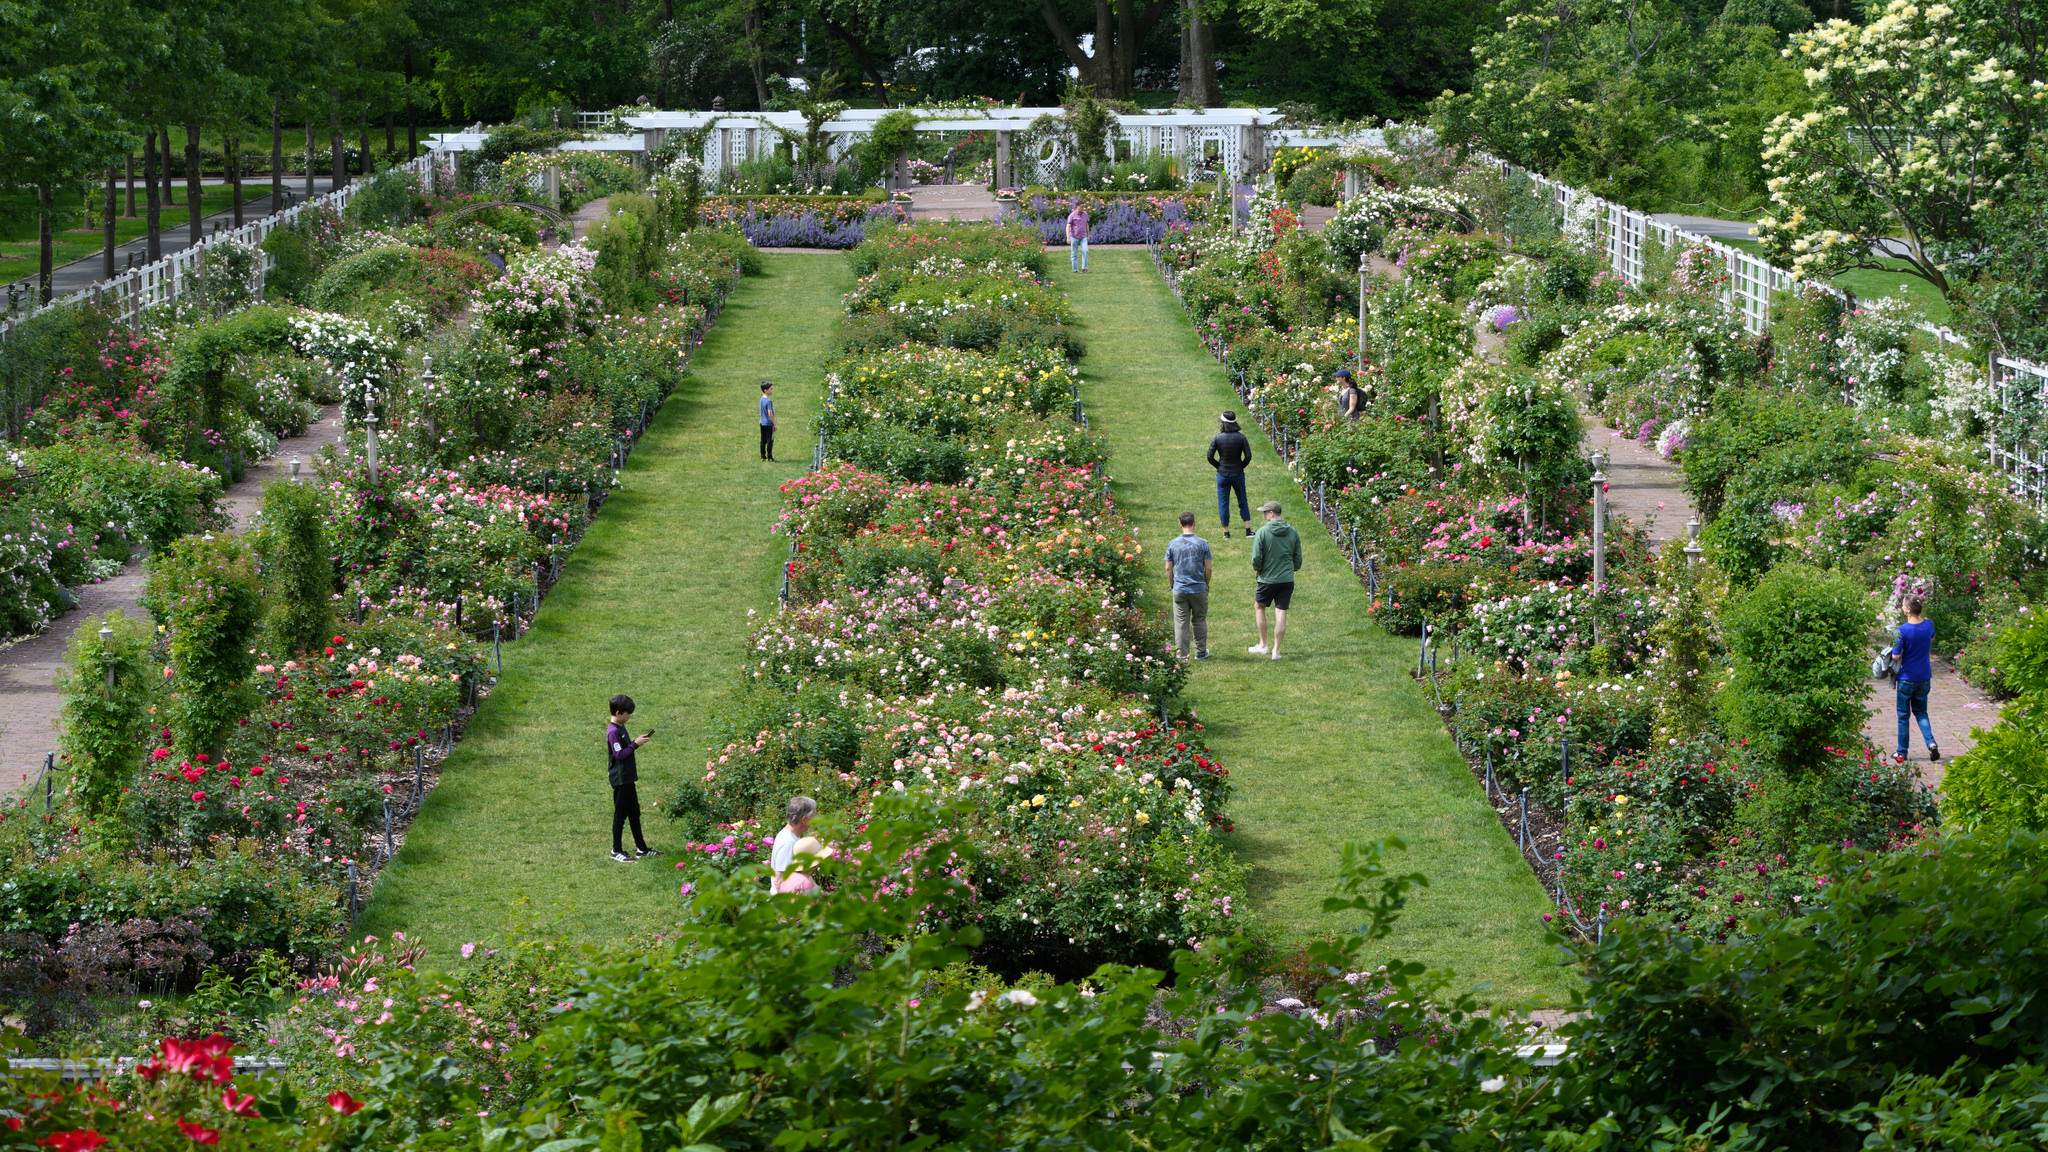 Highrises Could Cast Shadow Over Brooklyn Botanical Garden Warns Garden President The Indypendent